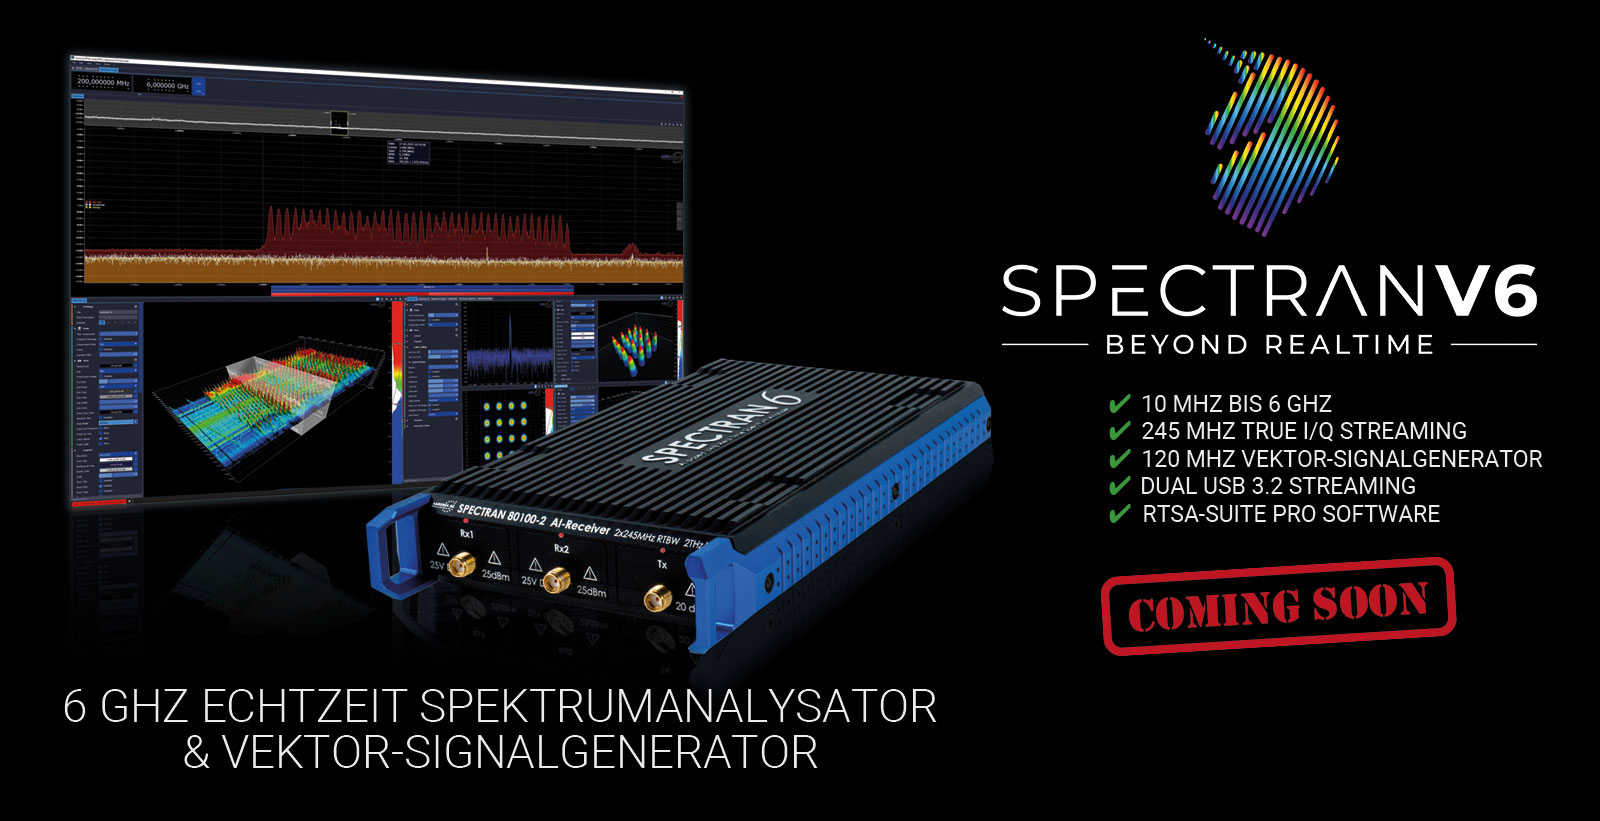 Aaronia SPECTRAN V6 Spectrum Analyzer is coming soon!